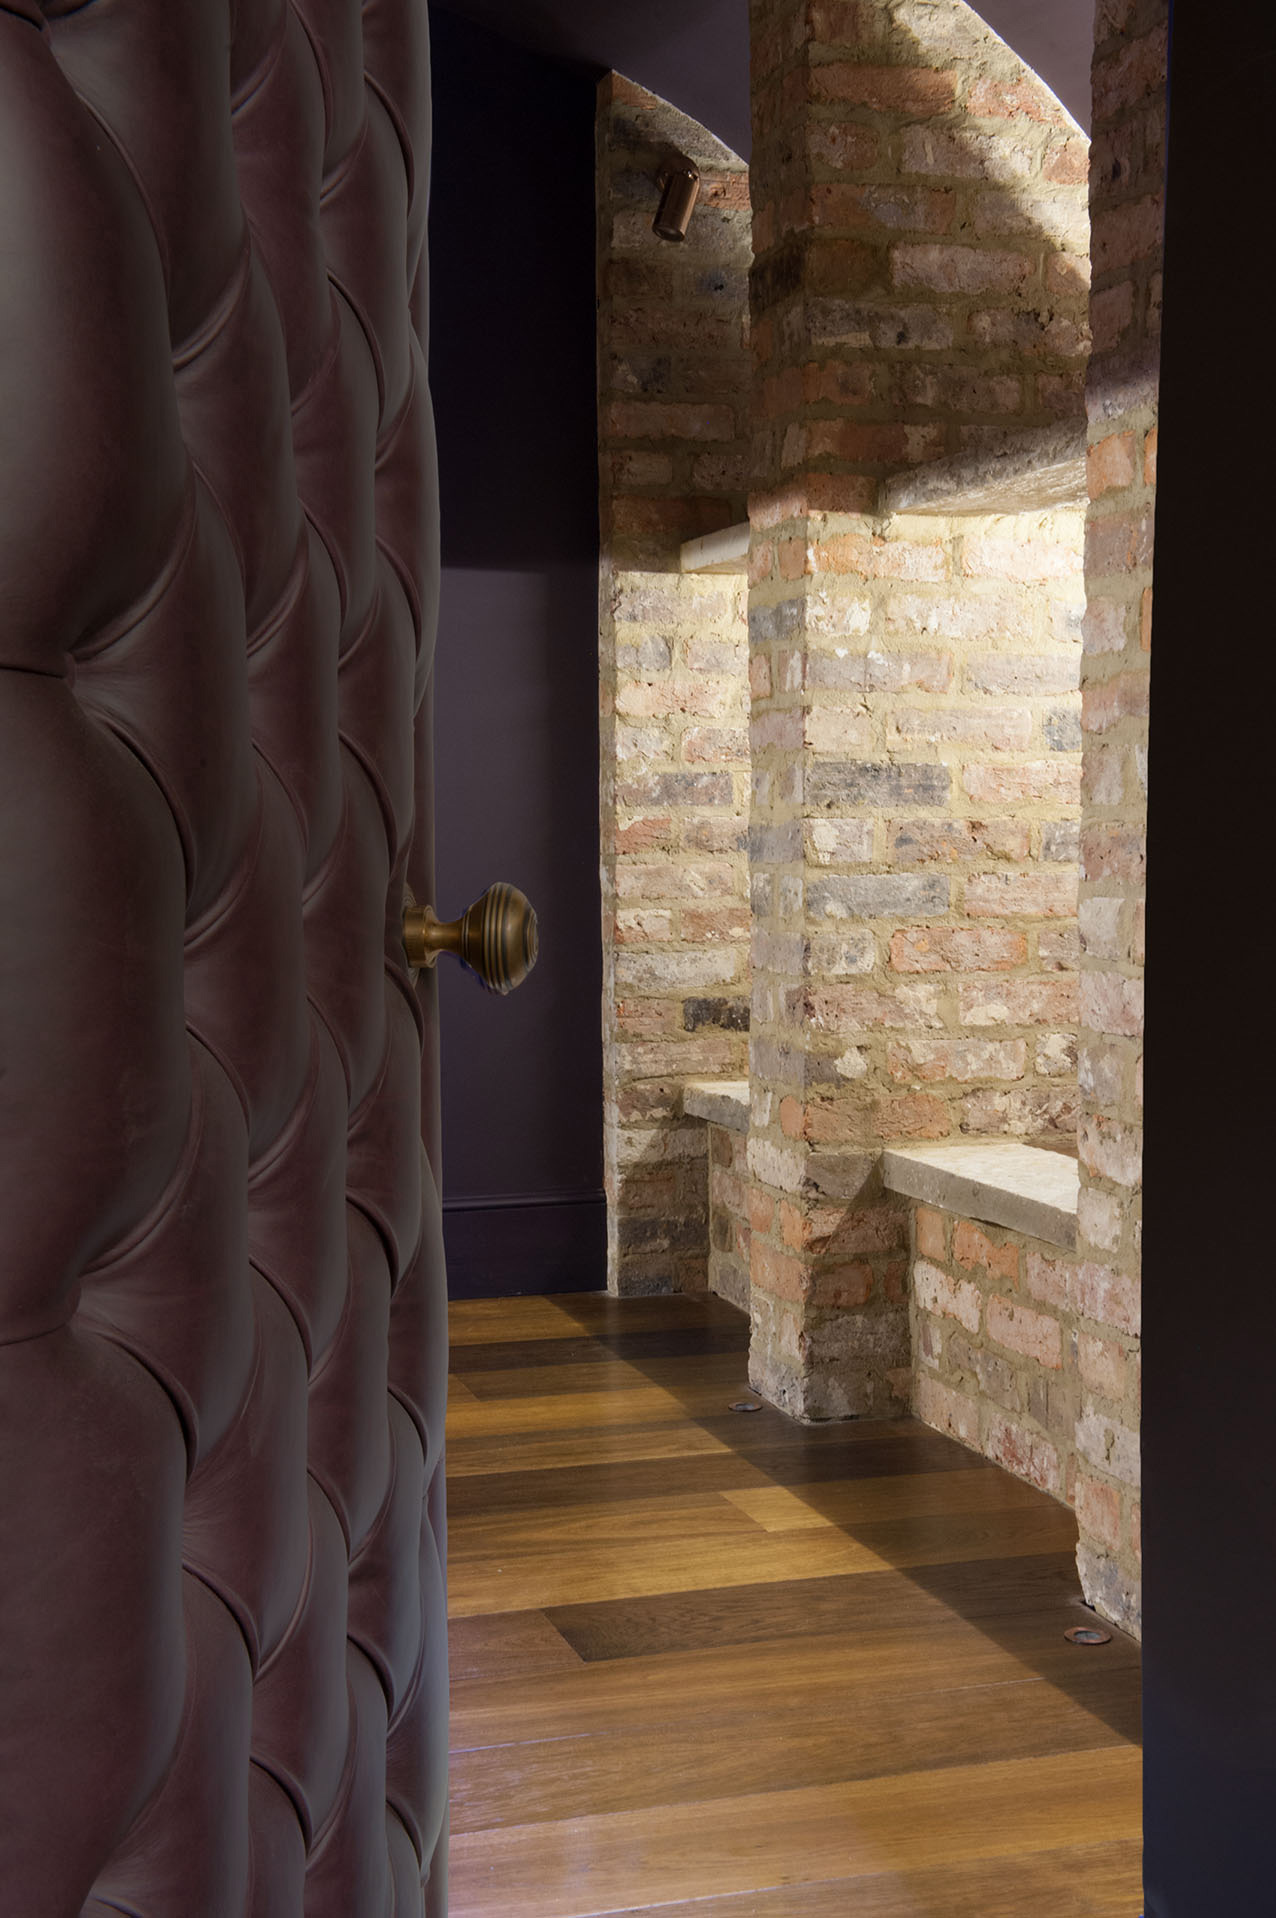 Oak landmark tatton plank in cellar with padded door and brick walls